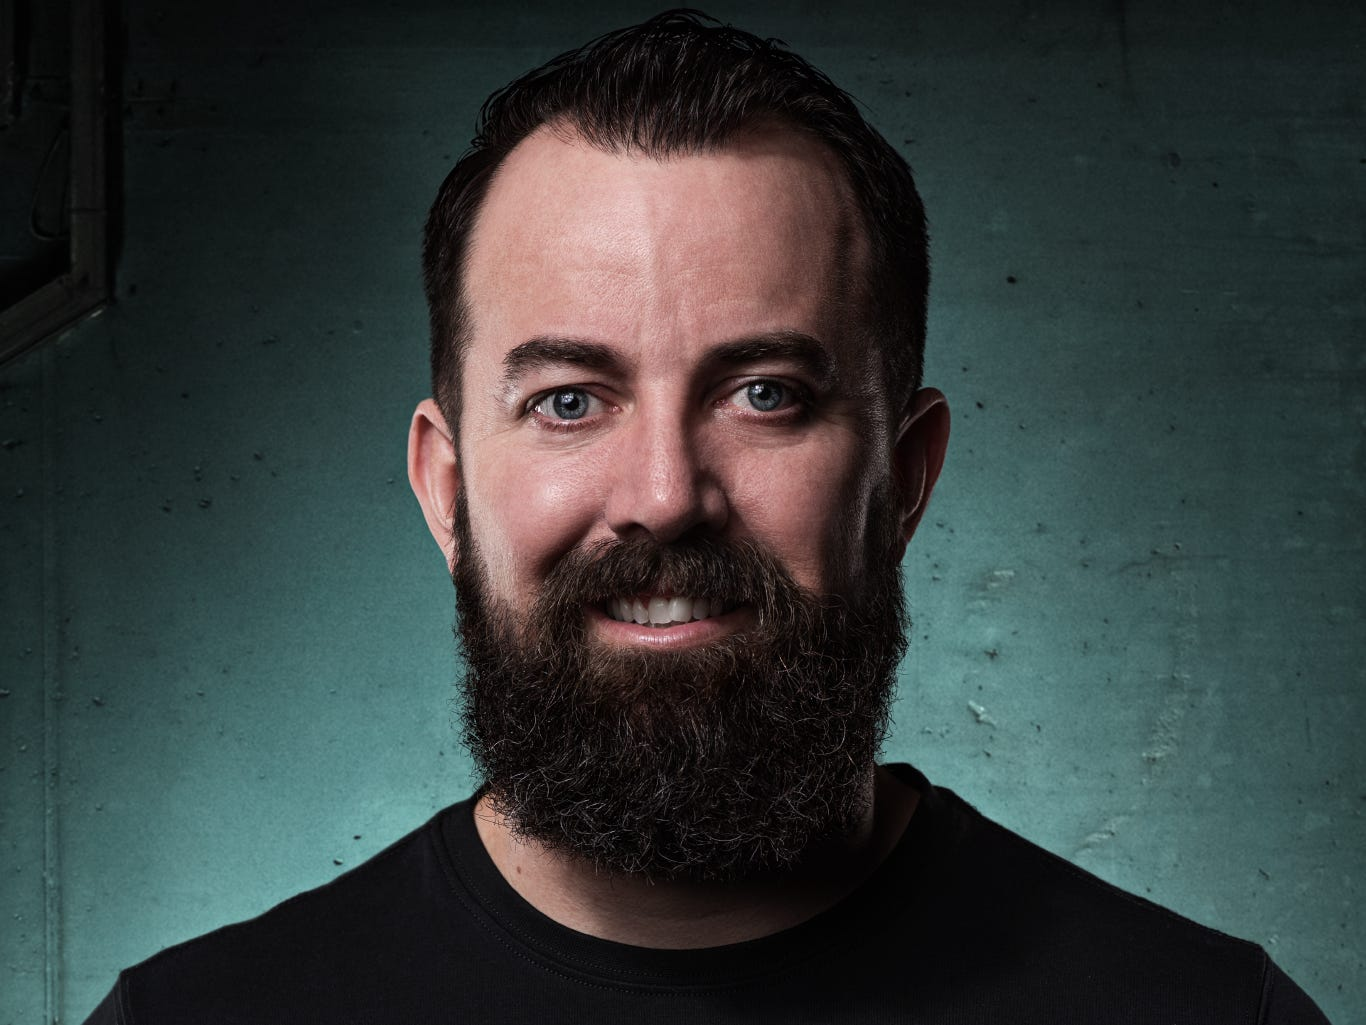 Dan Cummins performs at Helium Comedy Club in Indianapolis on Sept. 26-28, 2019.